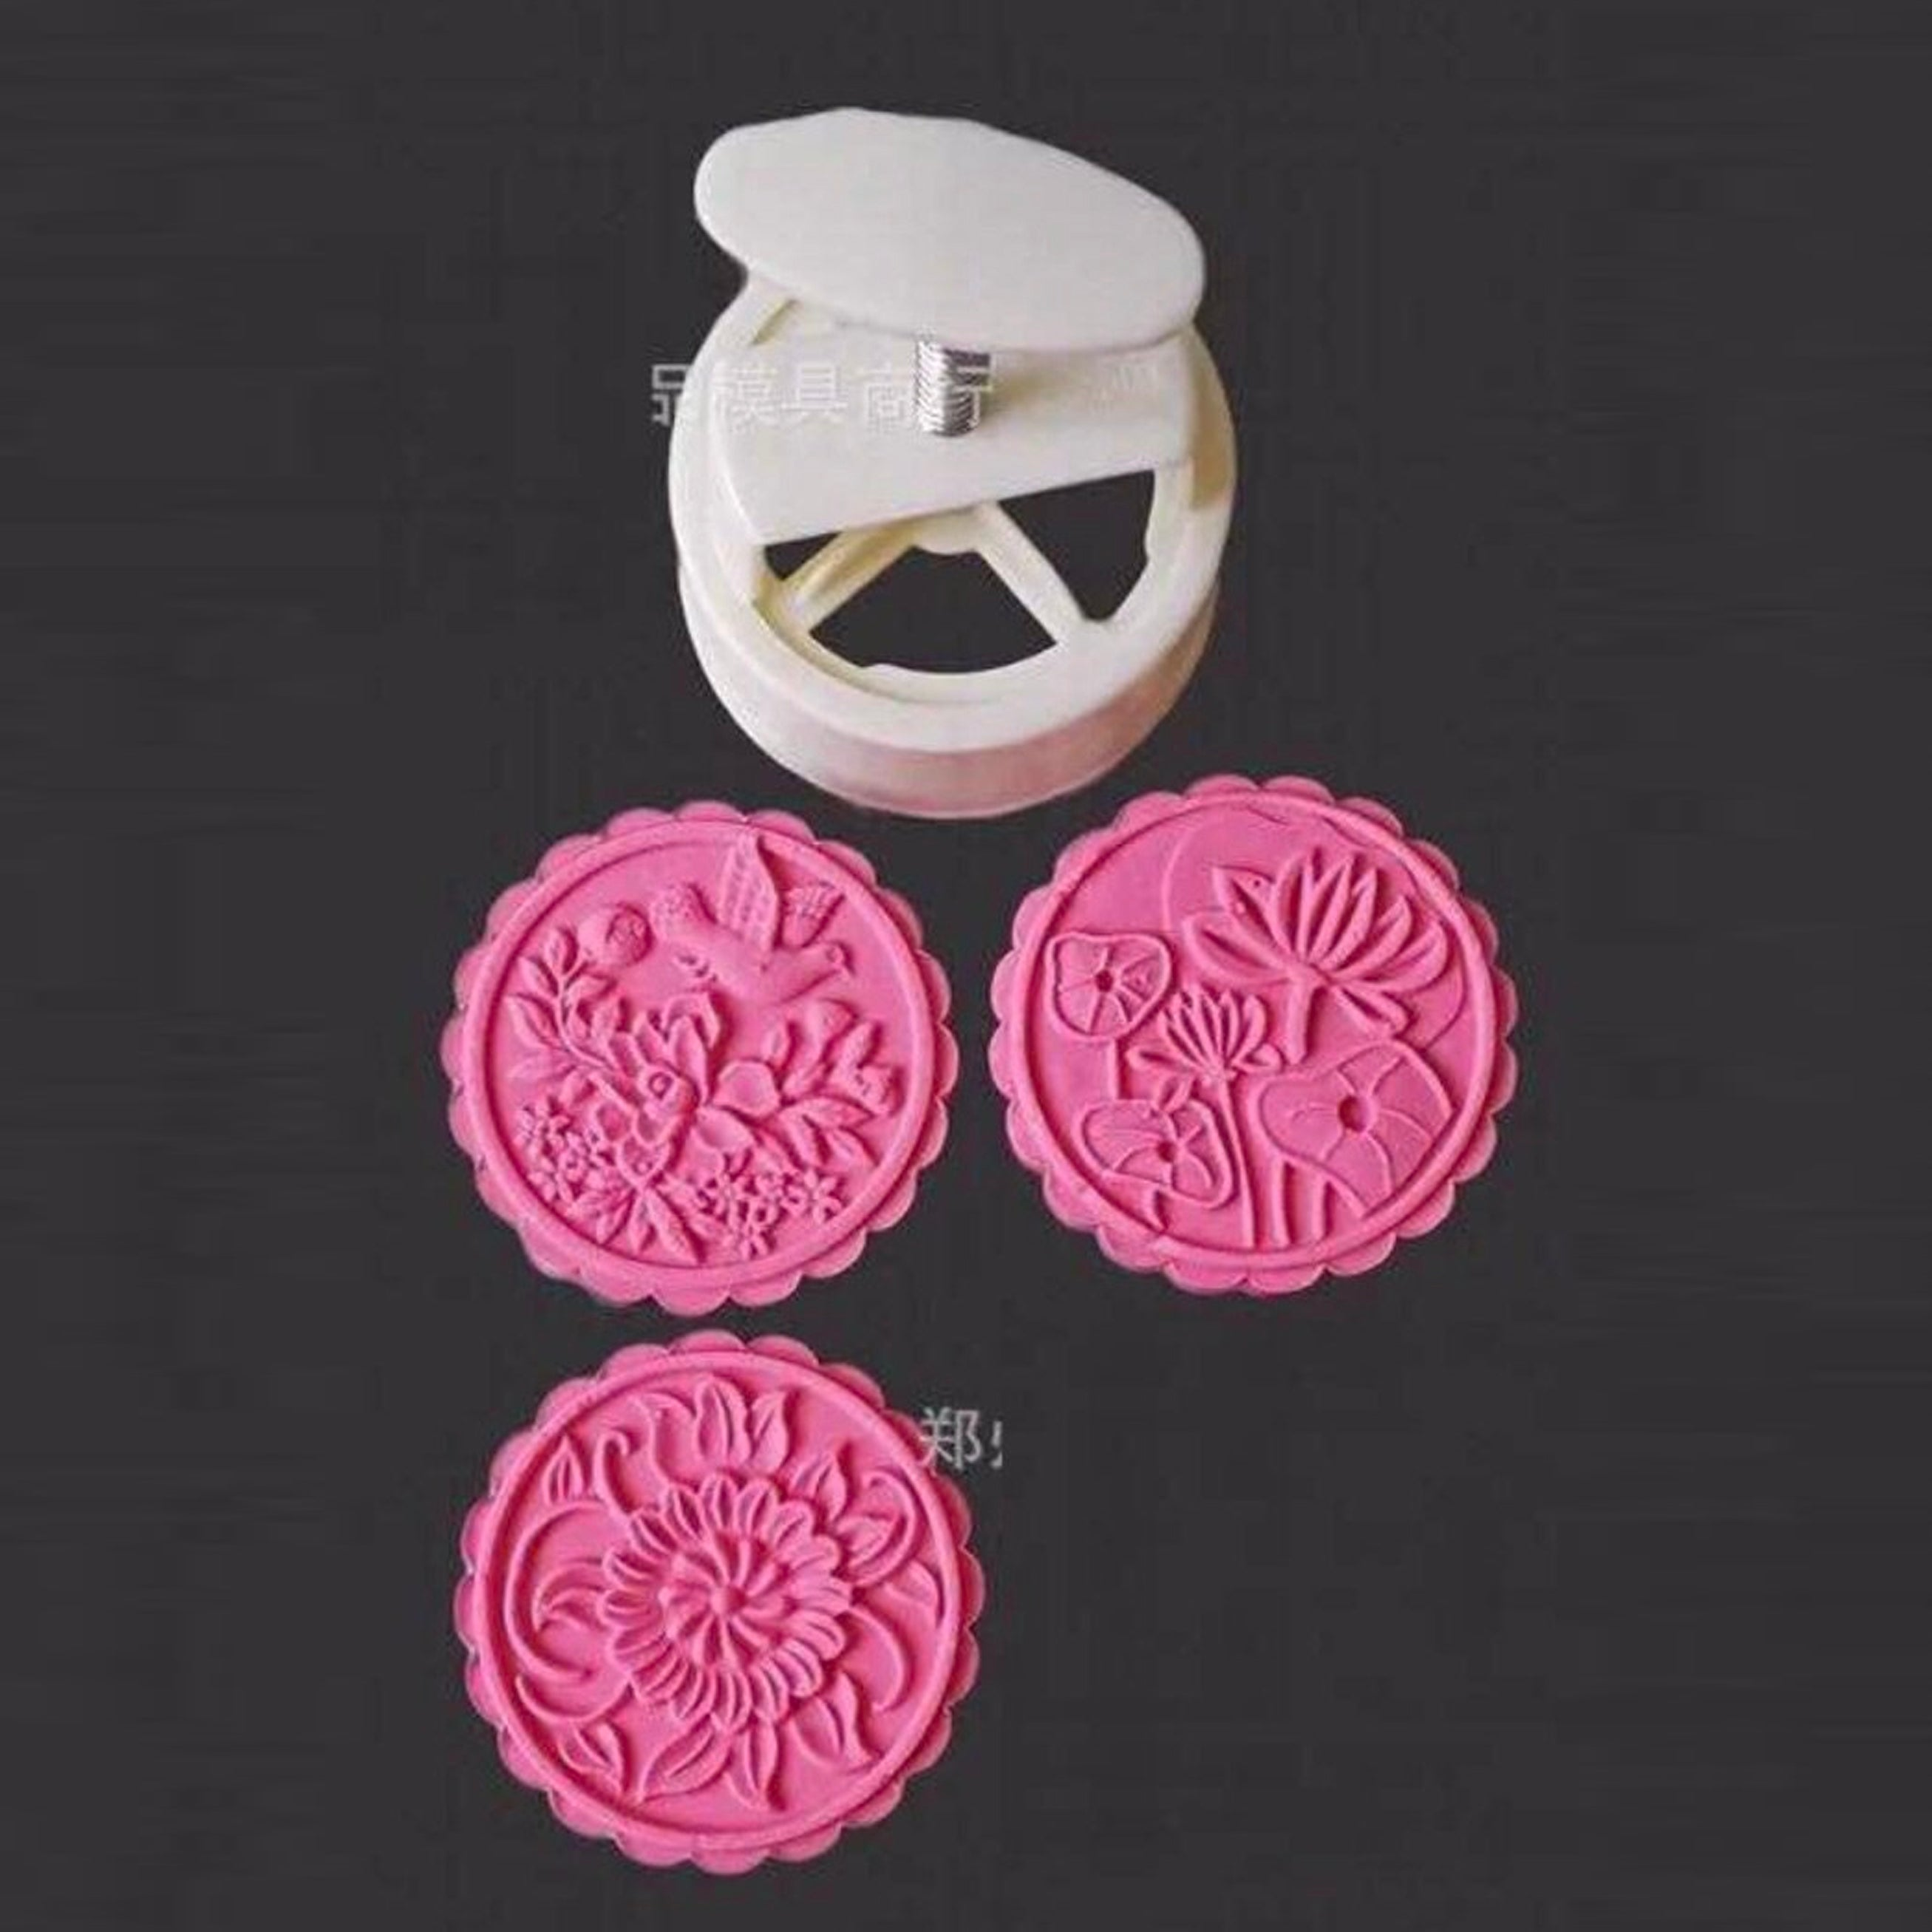 IN STOCK SALE 200g Moon Cake Press